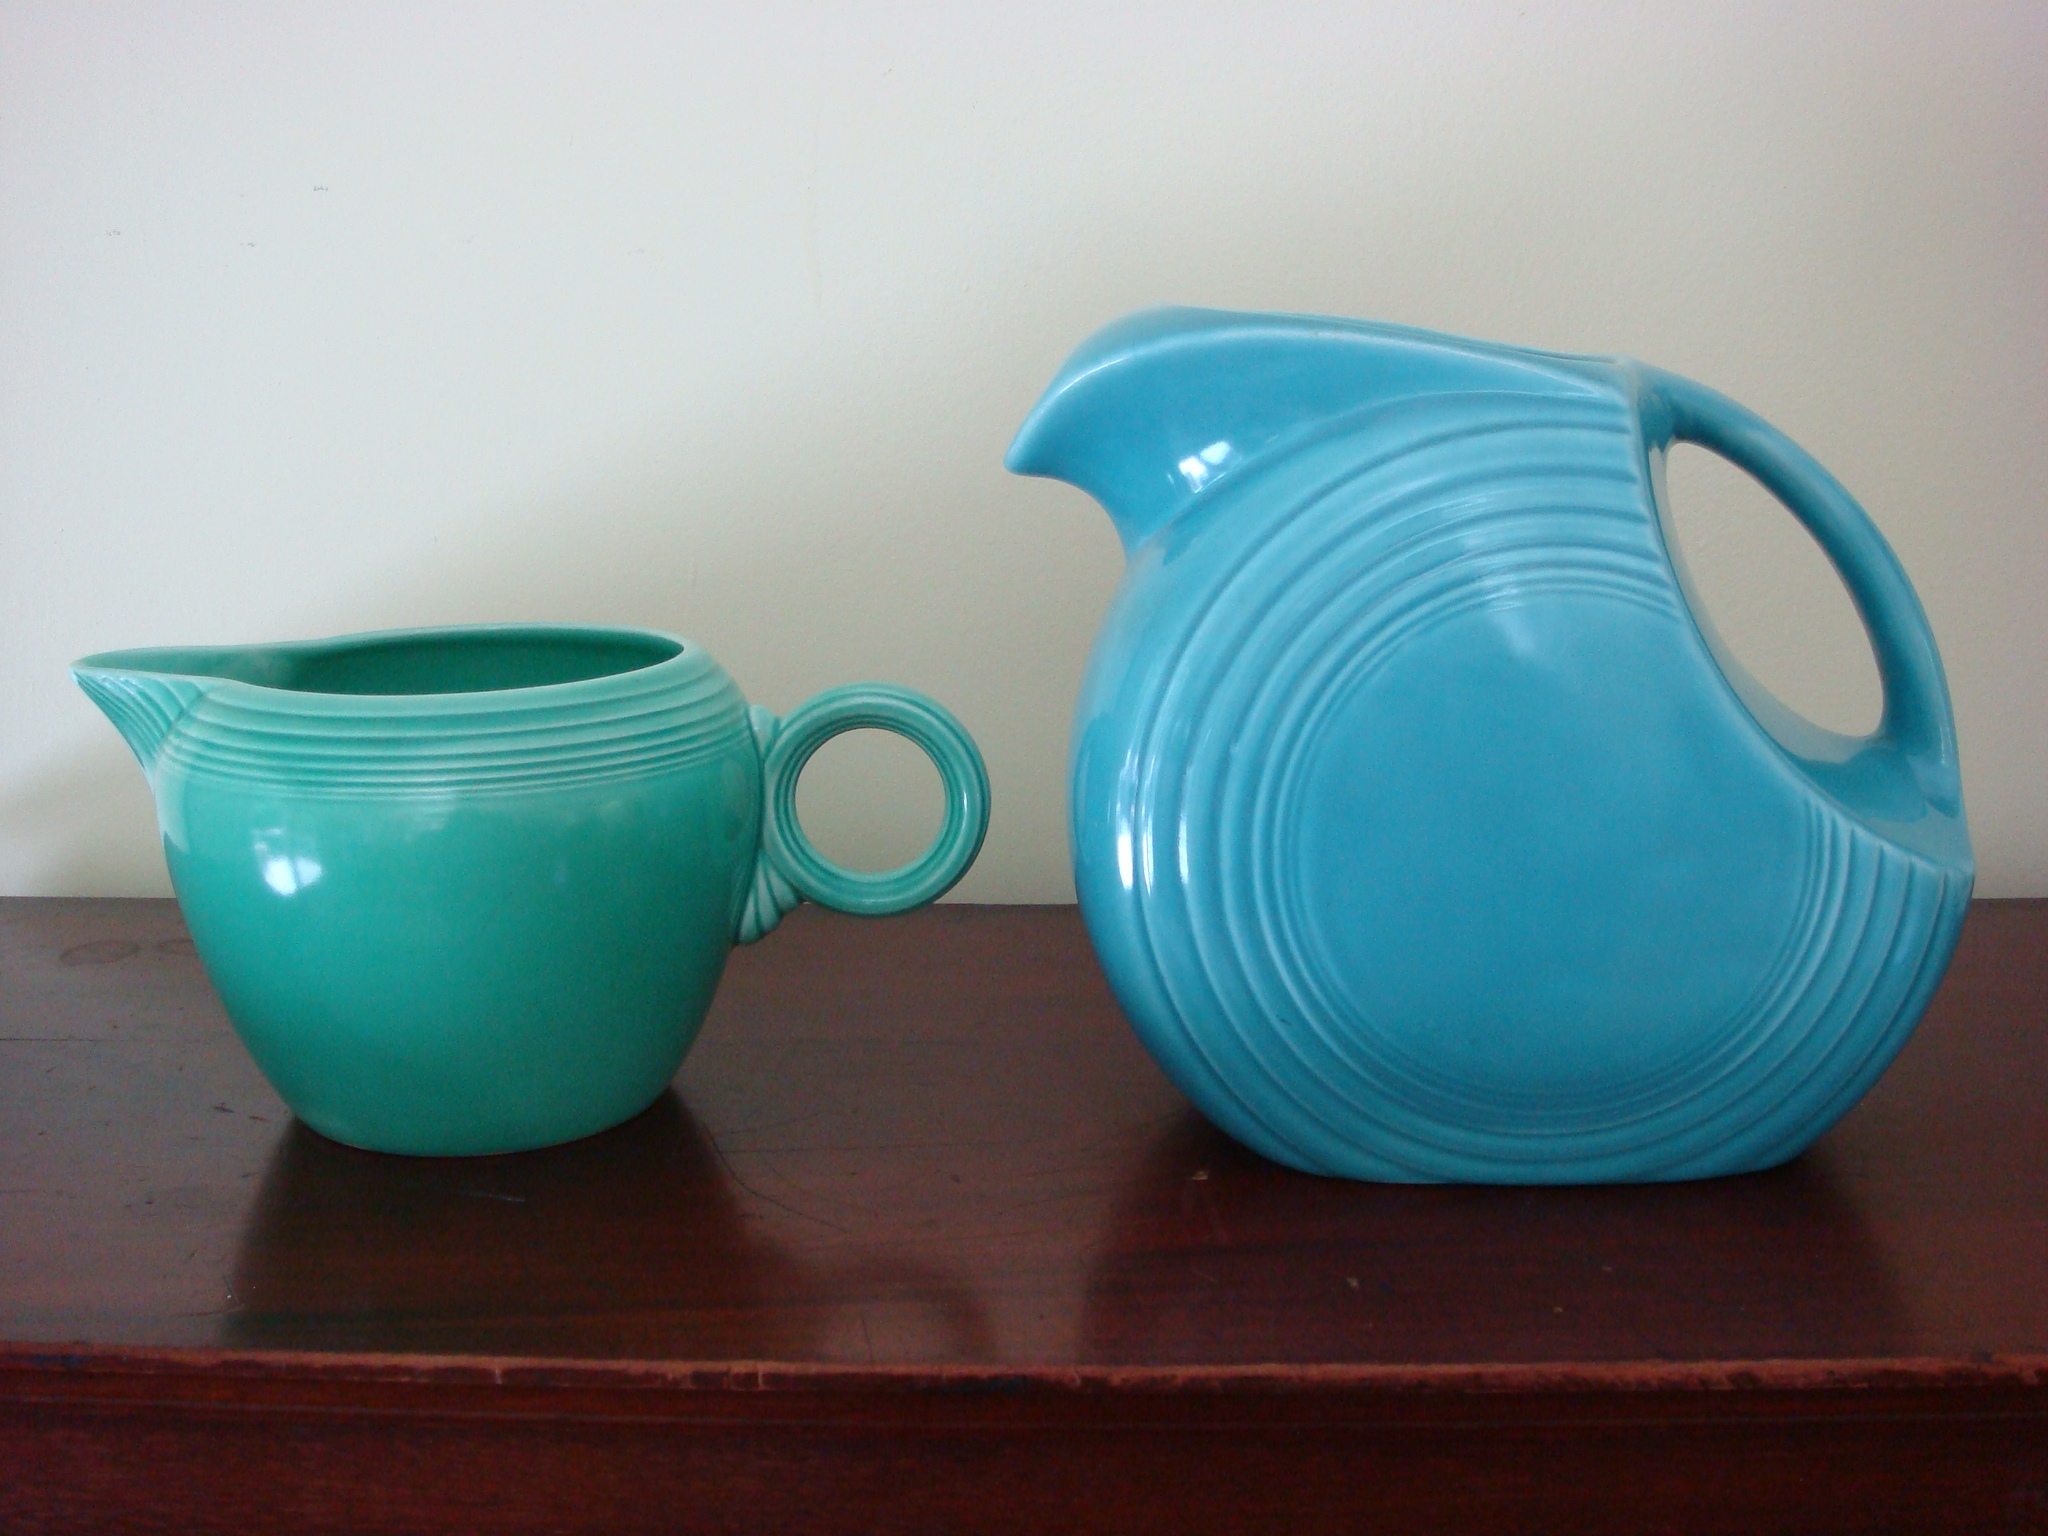 Awesome Collections Of Fiestaware For Dinnerware Ideas: Lovely Green Mug And Blue Teapot By Fiestaware For Drinkware Ideas